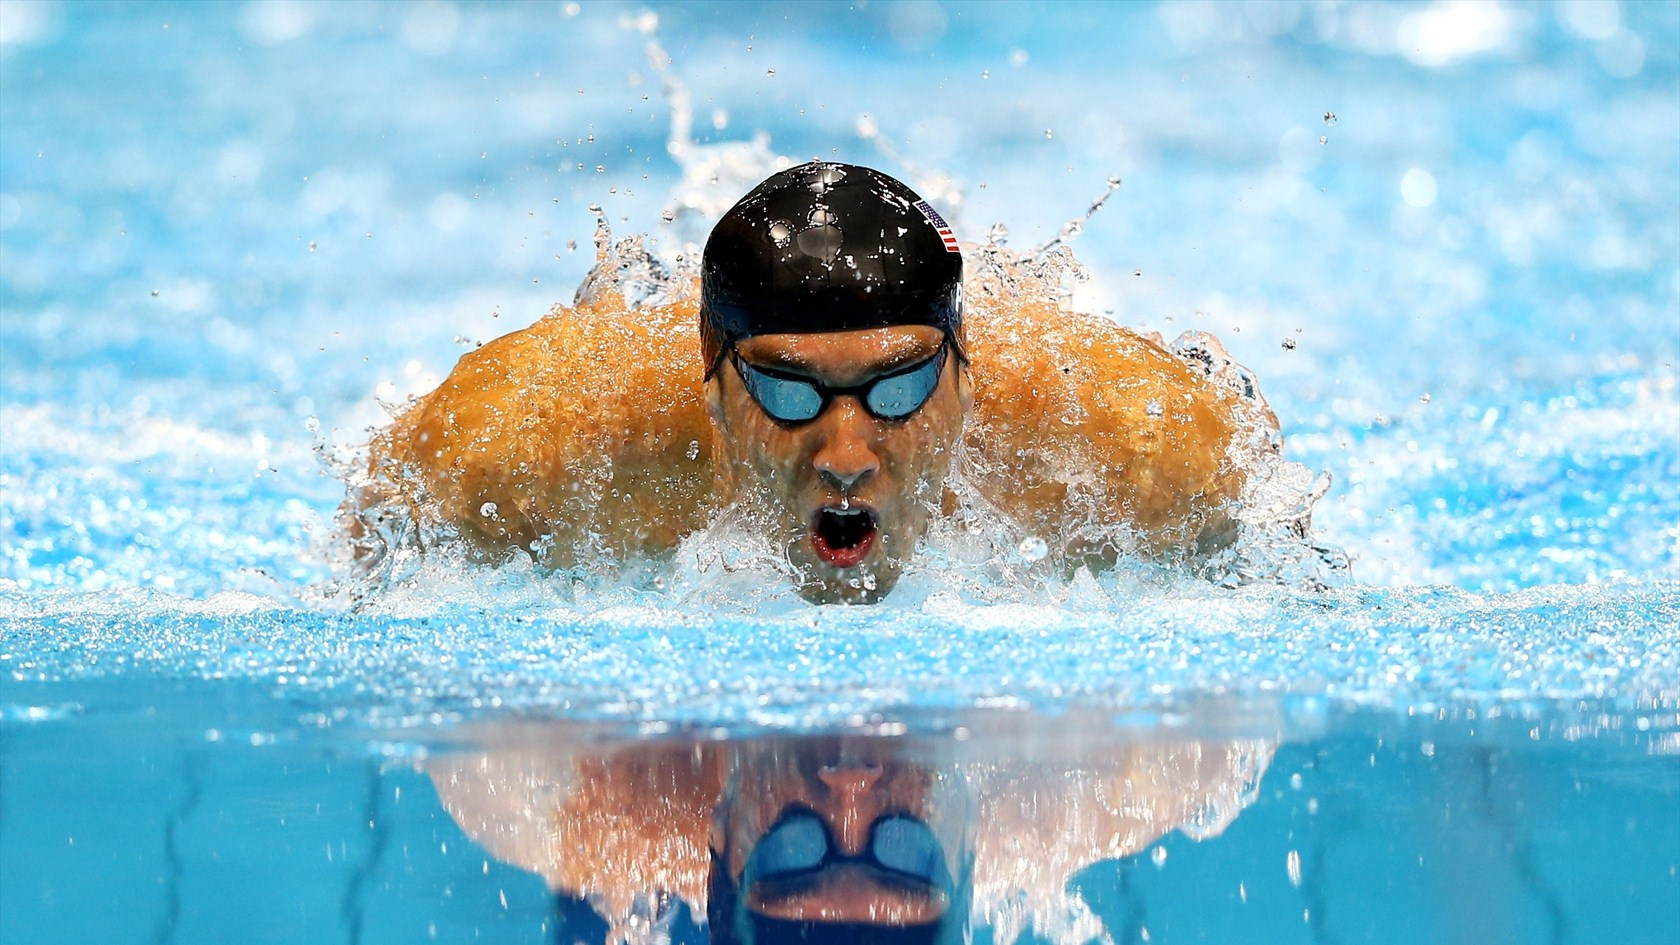 swimming-sport-hd-wallpapers-free-download